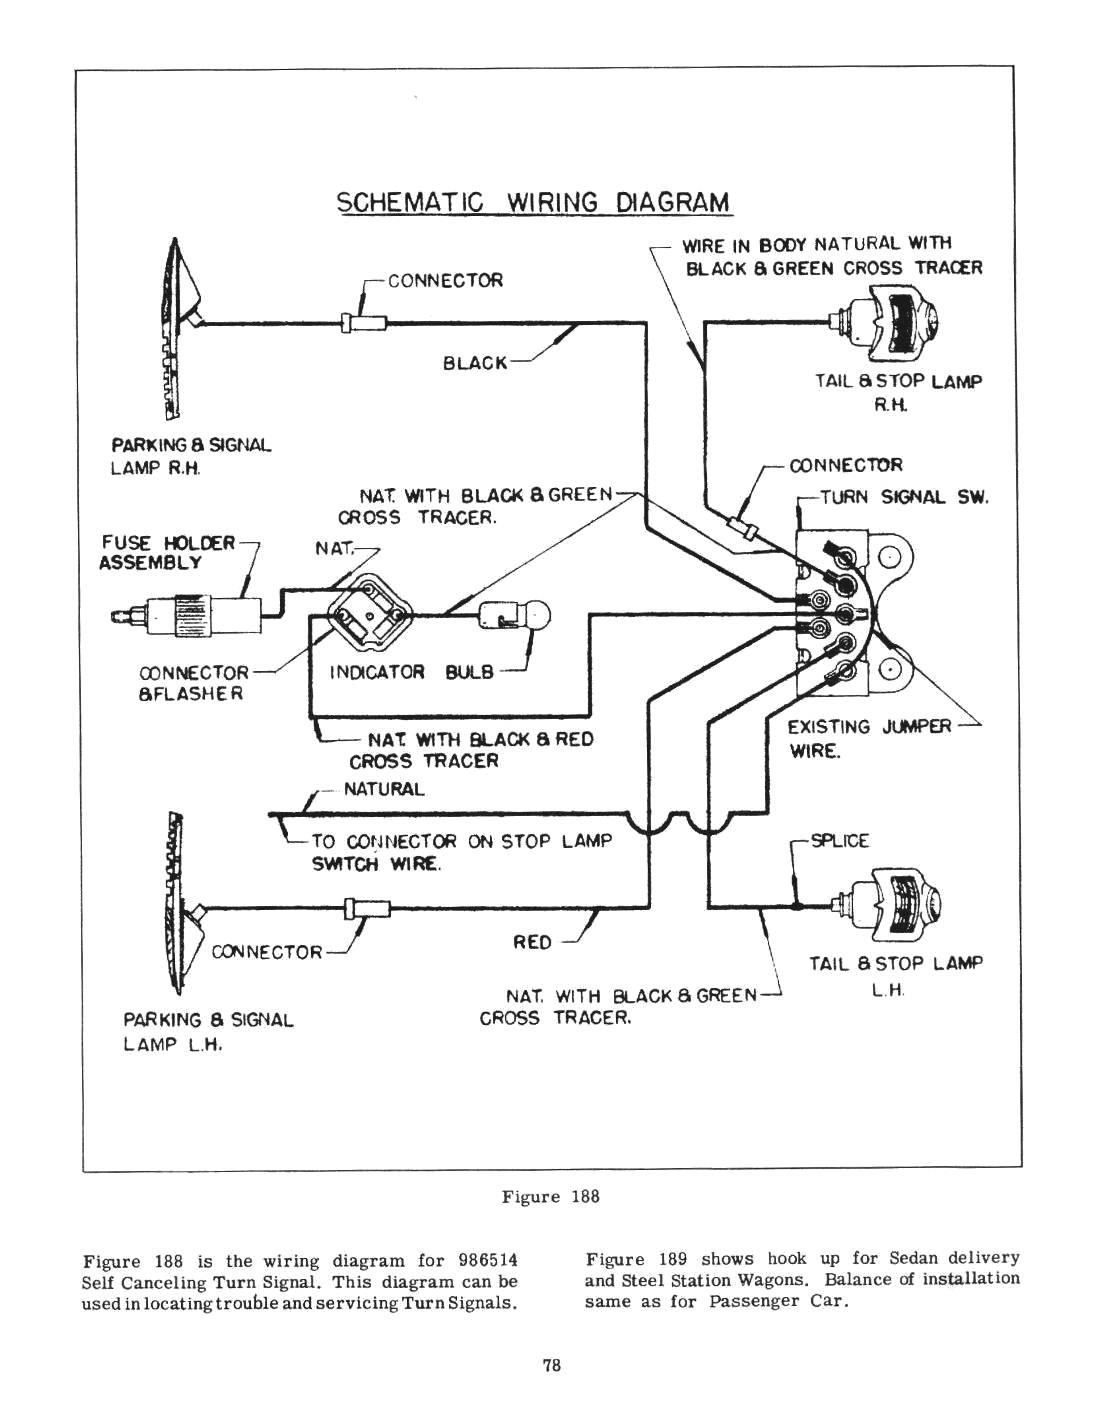 51 chevy wiring diagram  51  get free image about wiring